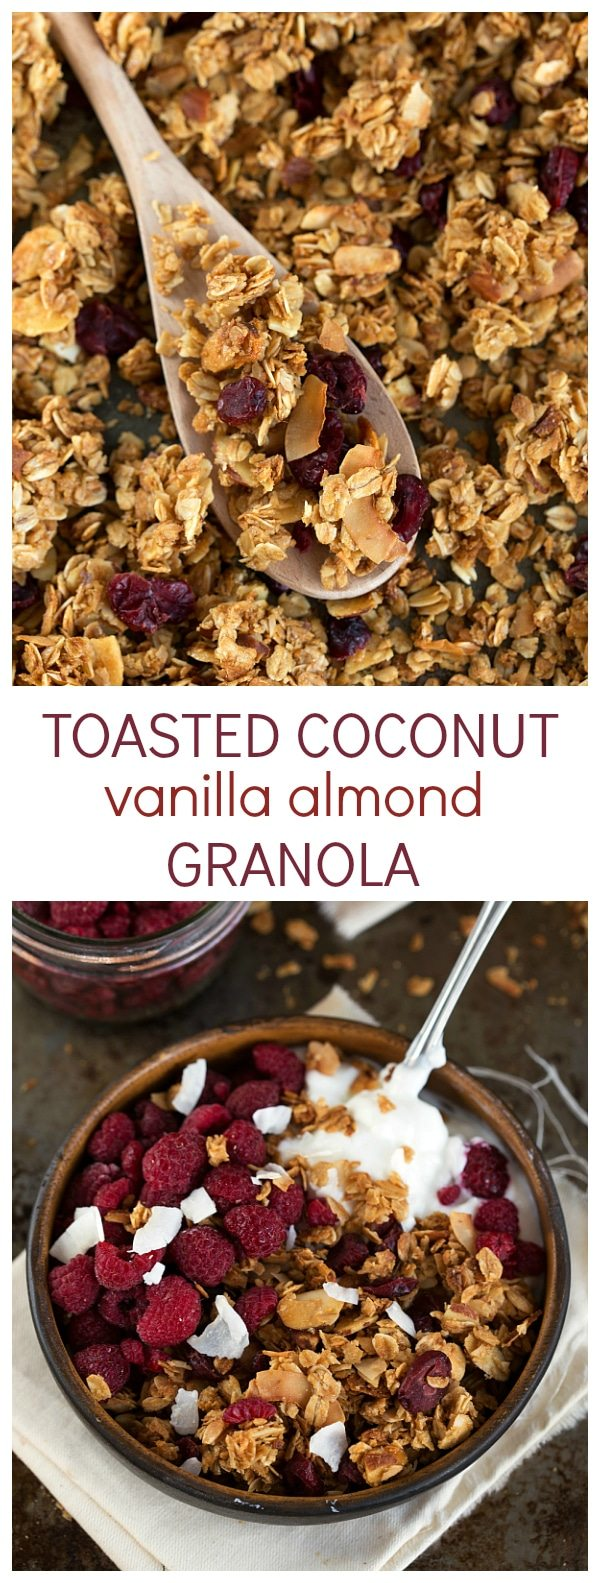 ... coconut and vanilla almond granola made with coconut oil and honey